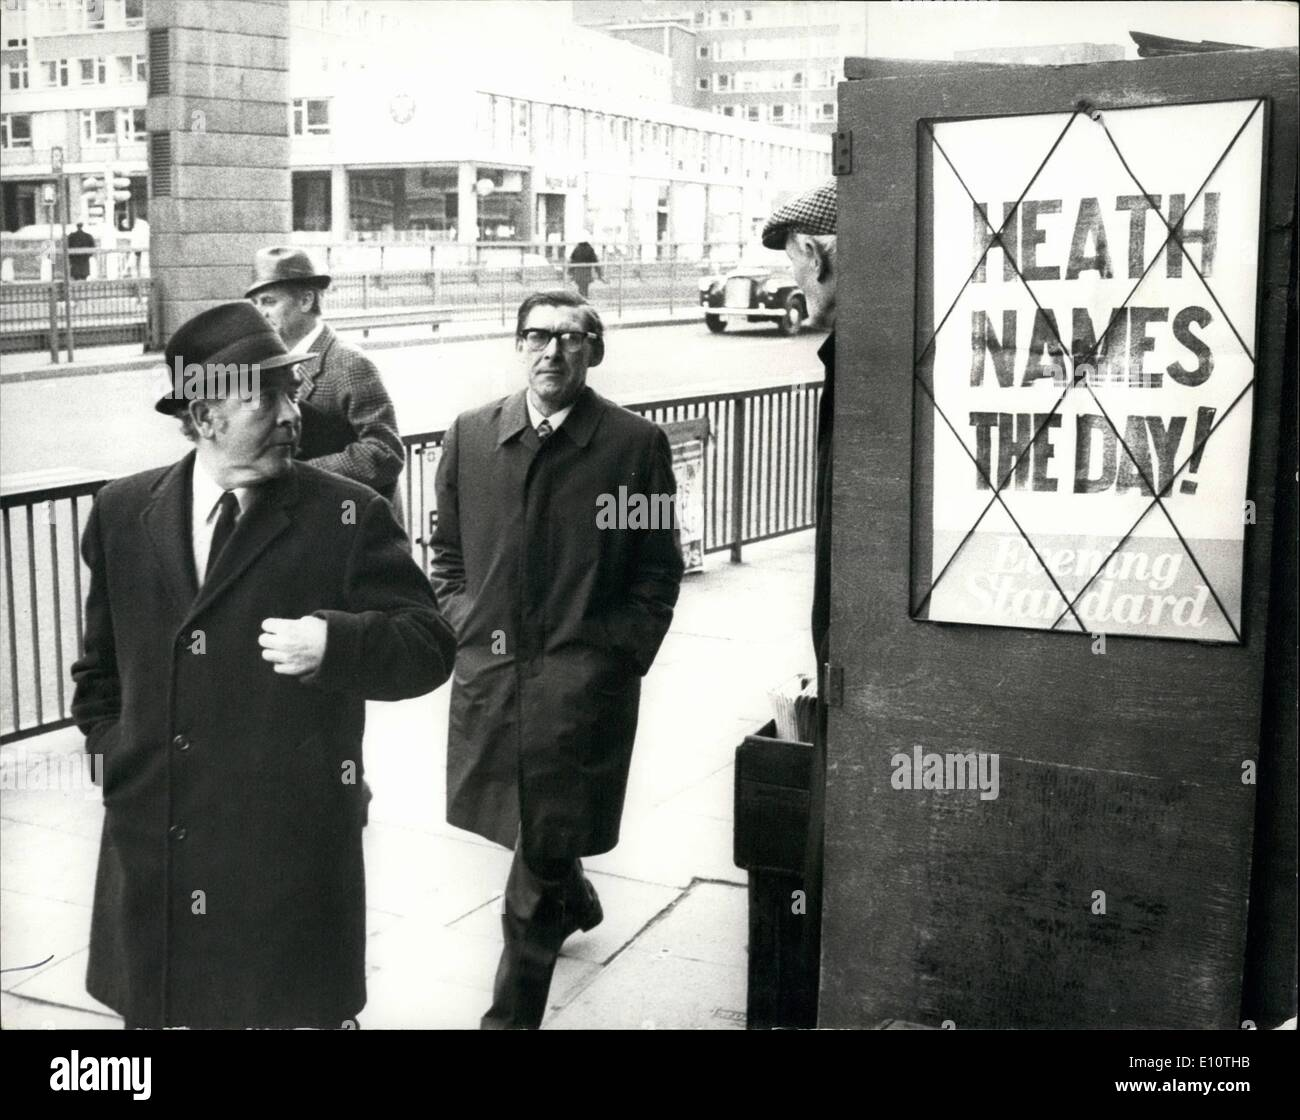 Feb. 02, 1974 - Joe gormley and Michael mcgahey takes the hint as ''Heath Names the day''. Today prime Minister Stock Photo